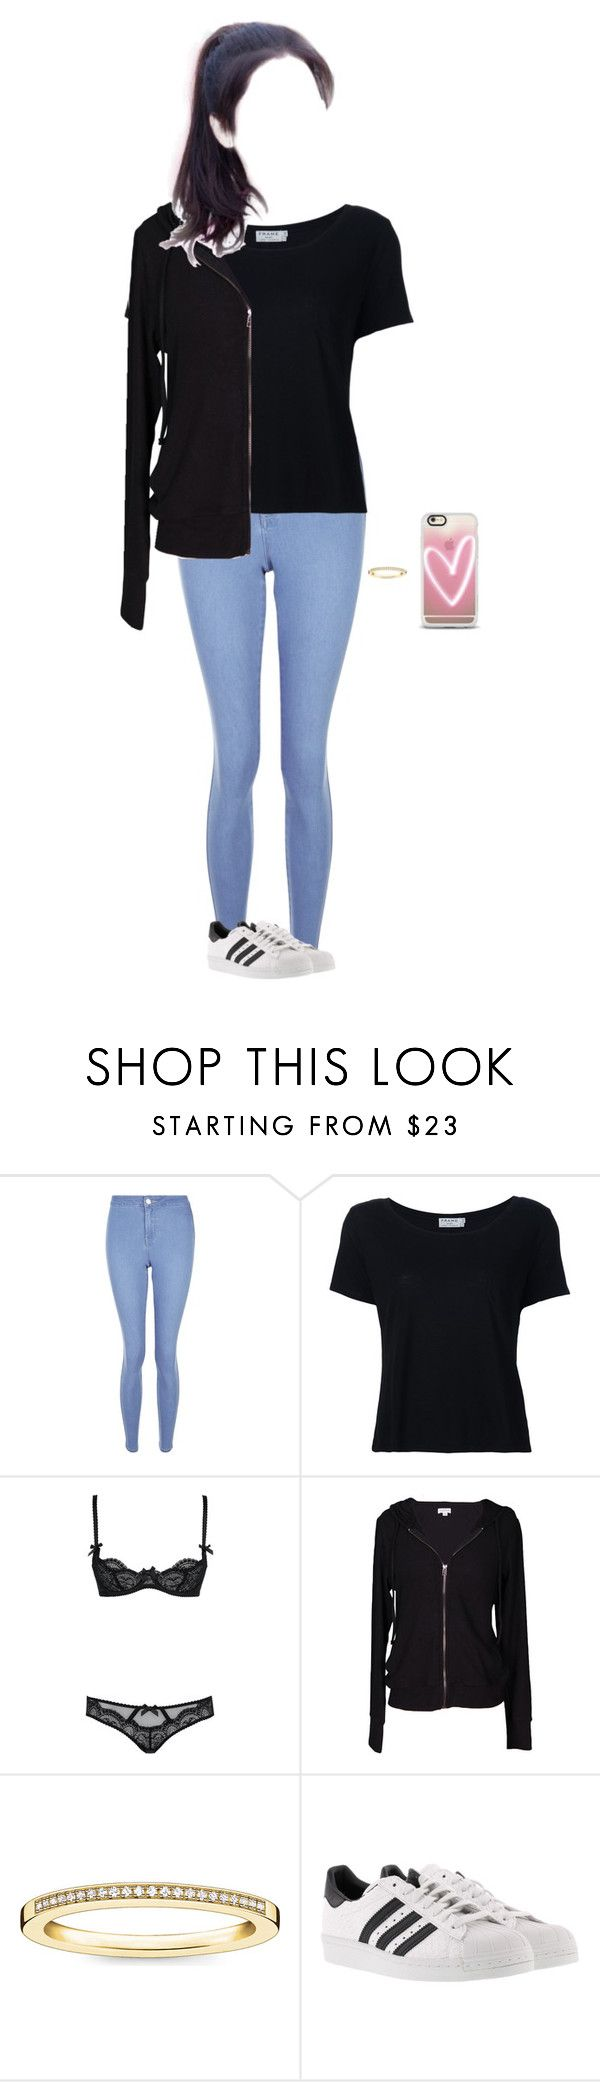 """""""Audition To Starship Entertainment"""" by lee-soohyun ❤ liked on Polyvore featuring New Look, Frame, L'Agent By Agent Provocateur, Velvet by Graham & Spencer, Thomas Sabo, adidas and Casetify"""